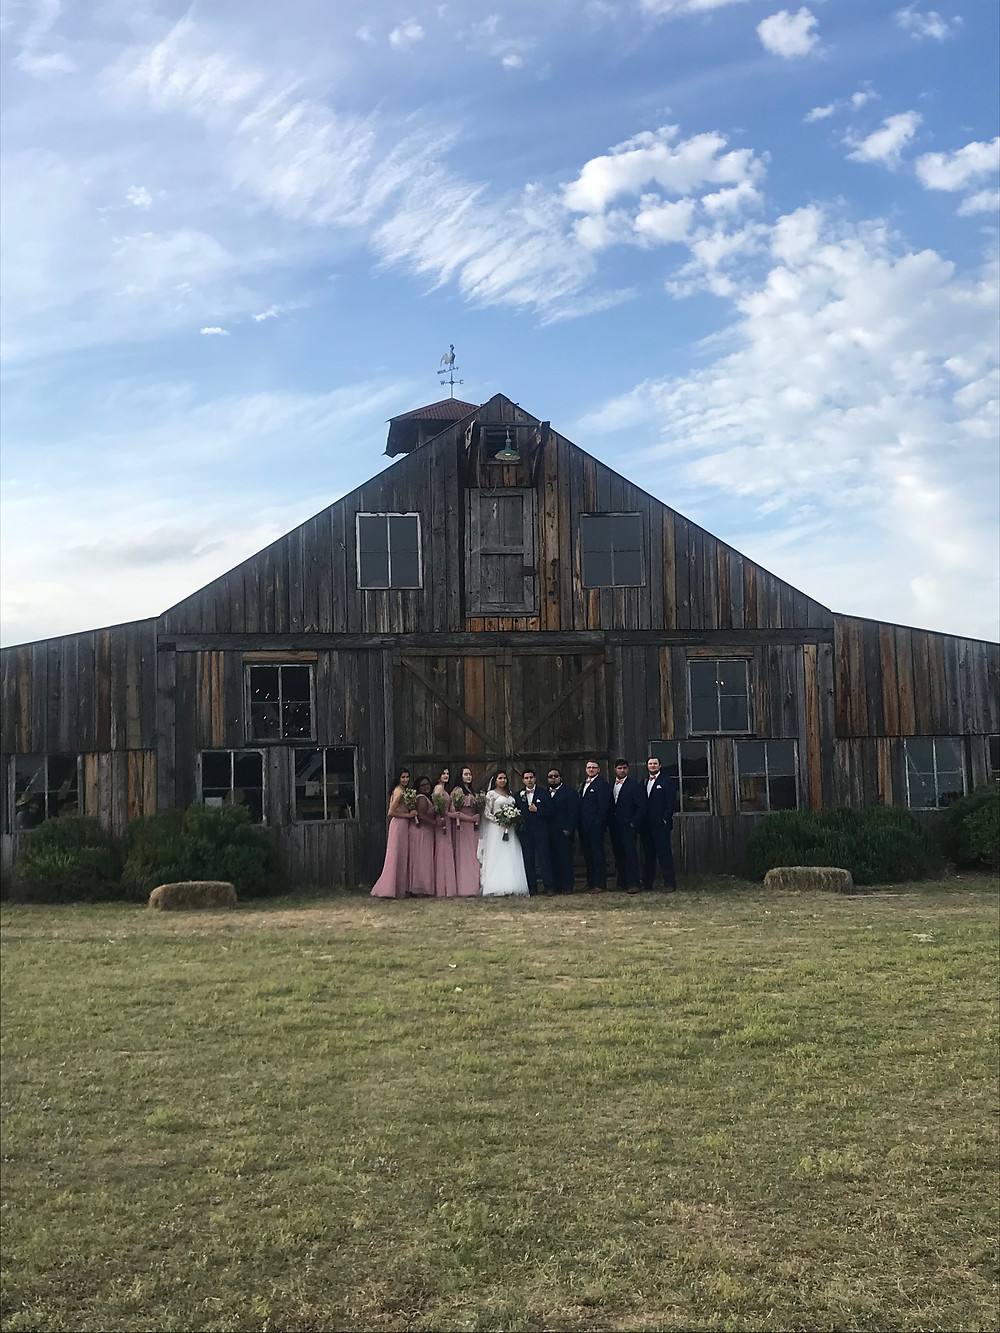 Wedding at the 1850 Settlement